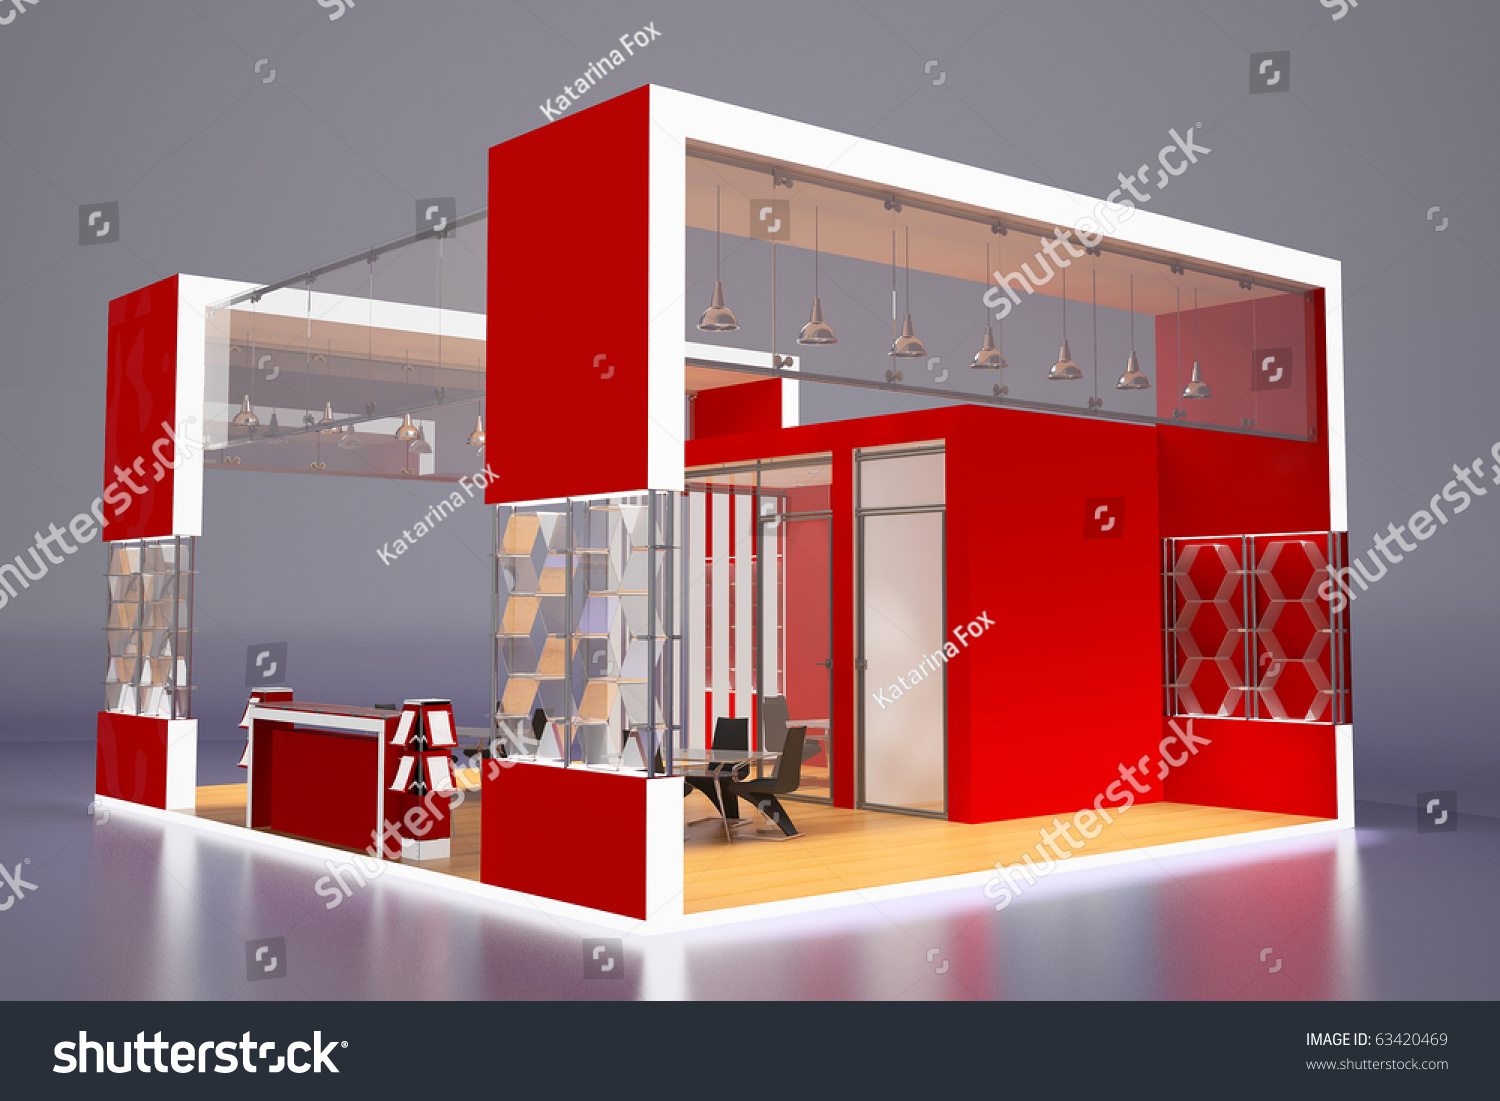 Modern Exhibition Stand By Me : D render modern red exhibition stand stock illustration